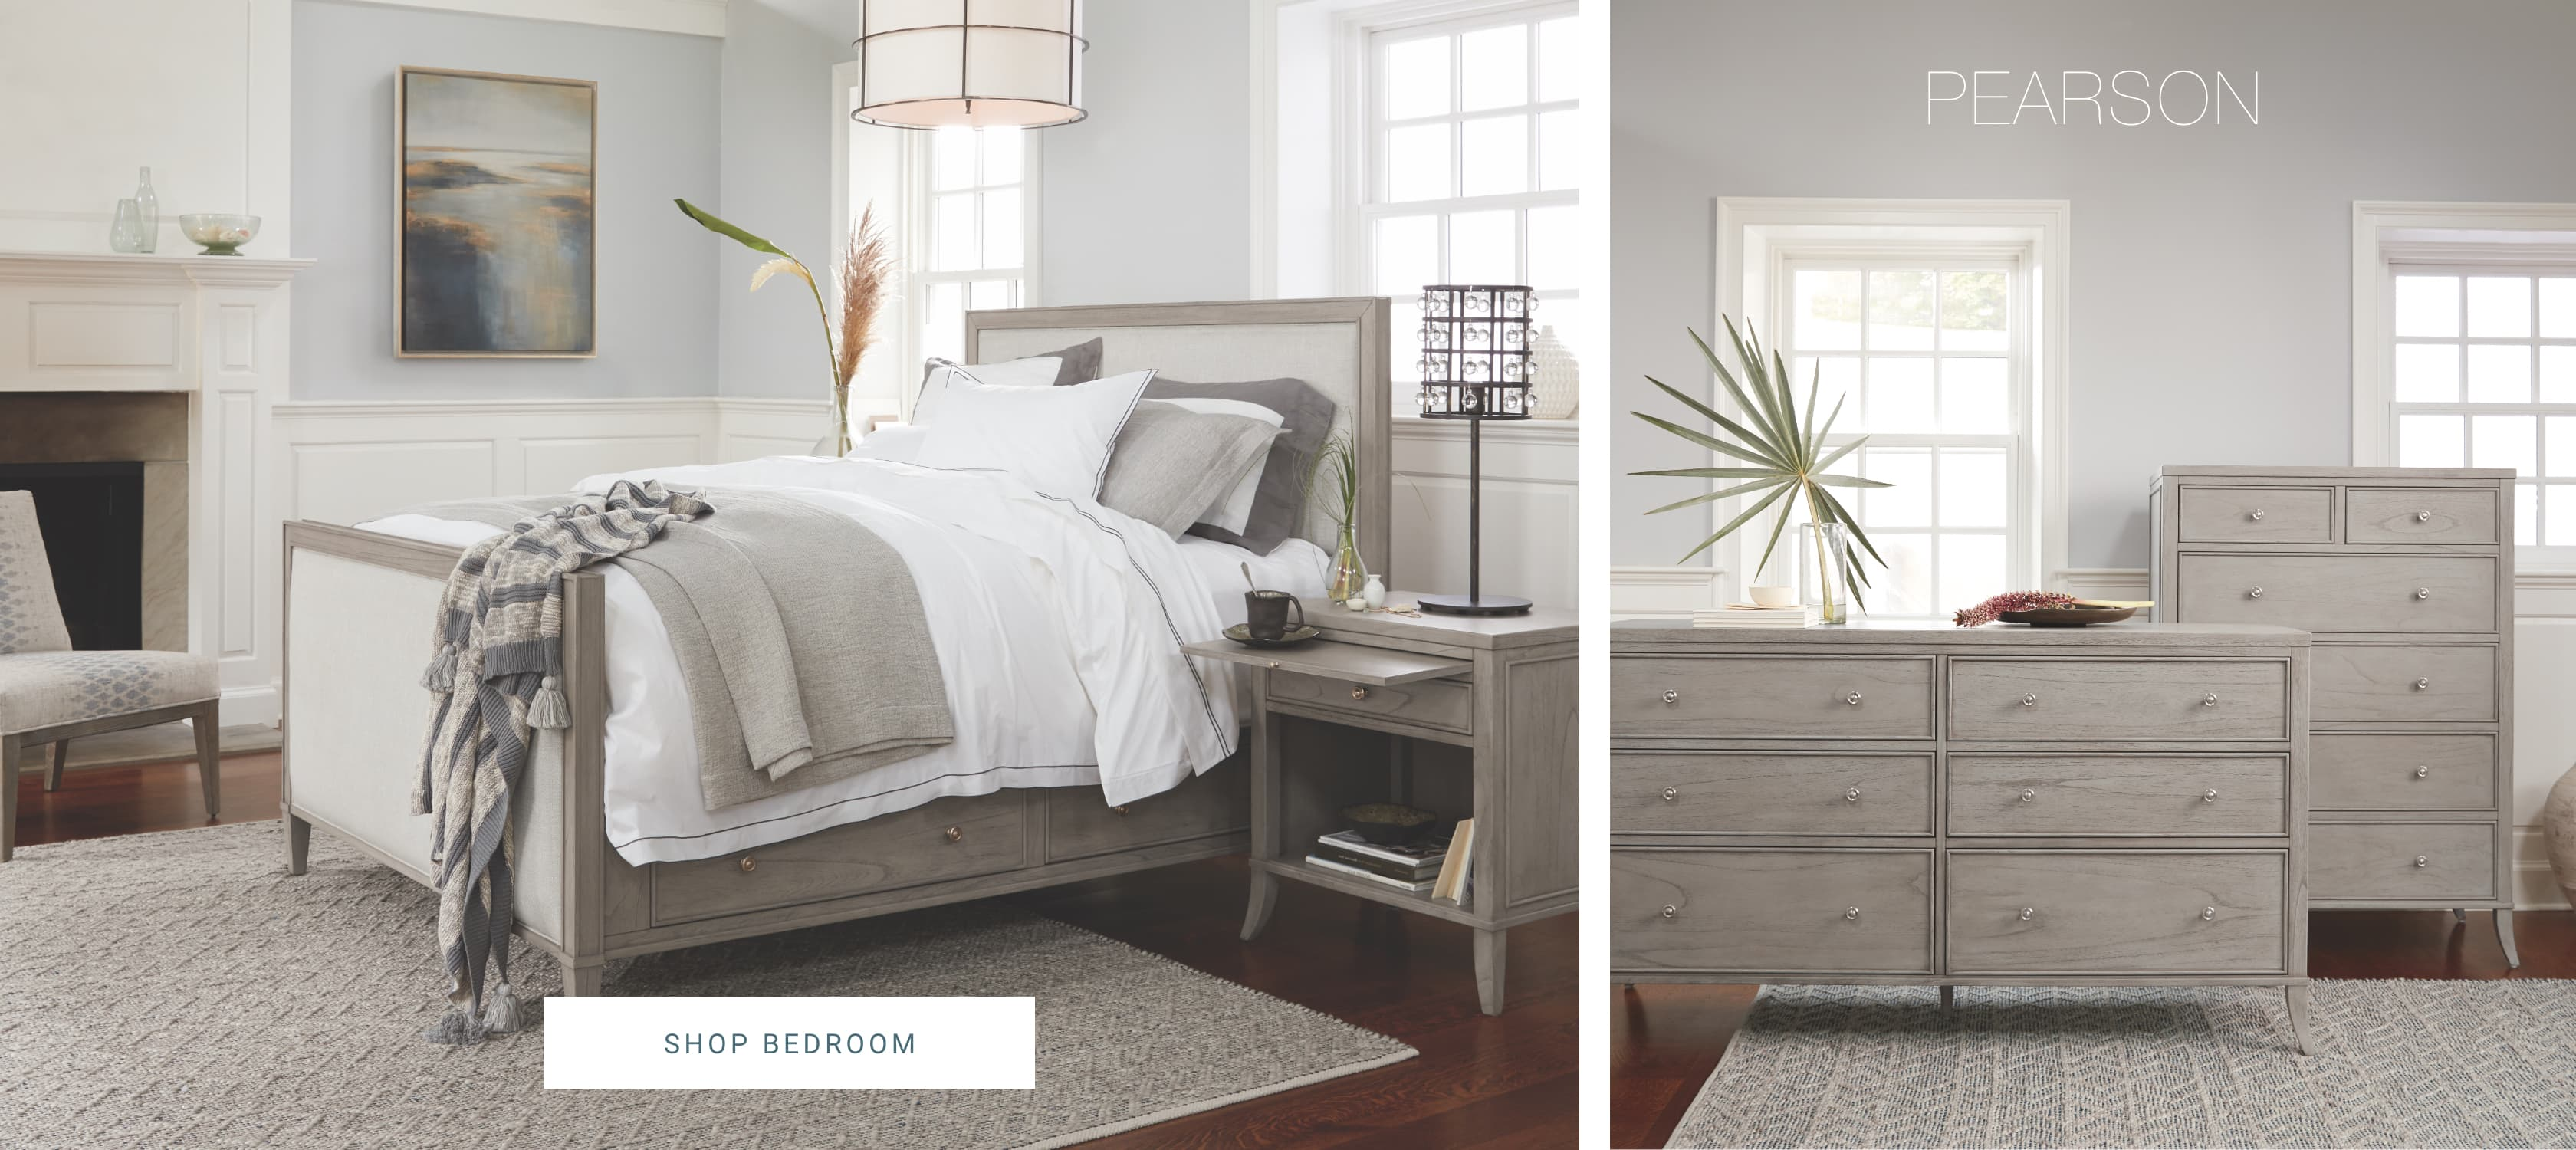 Storewide Sale - Save Up to 40% on Bedroom Furniture